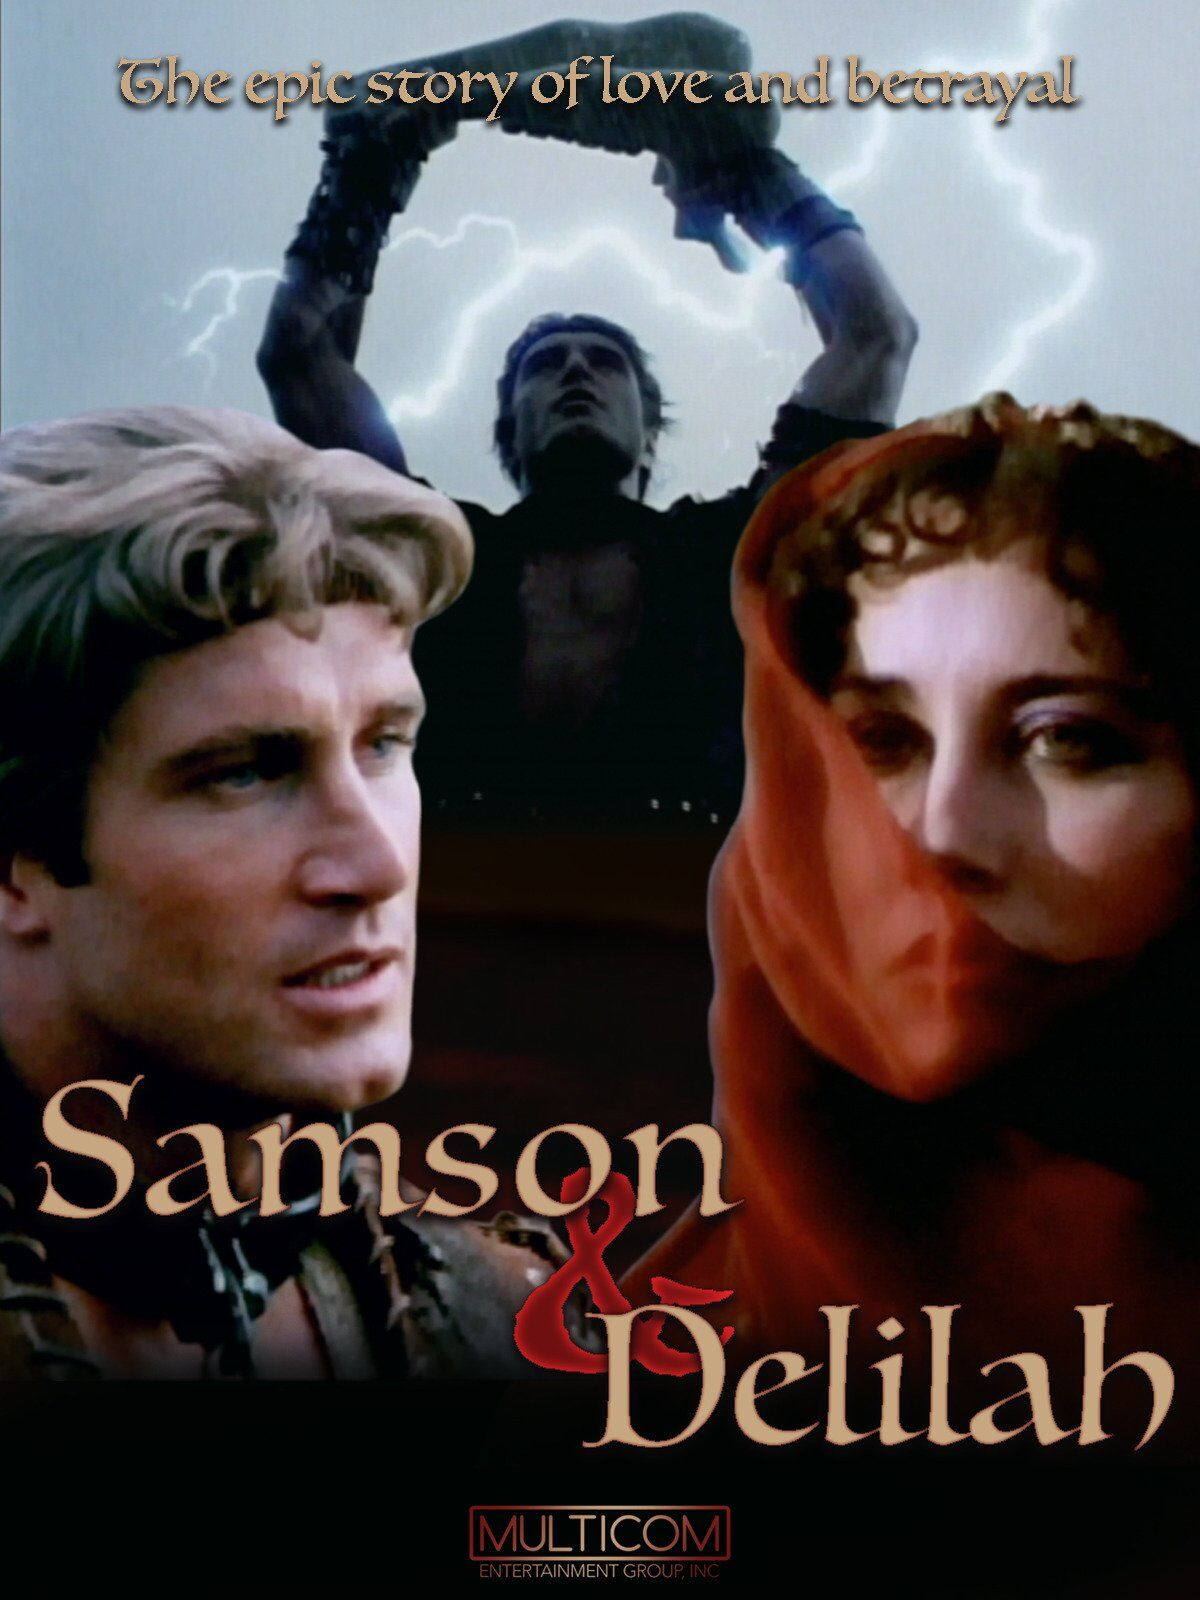 Samson and Delilah (1984)